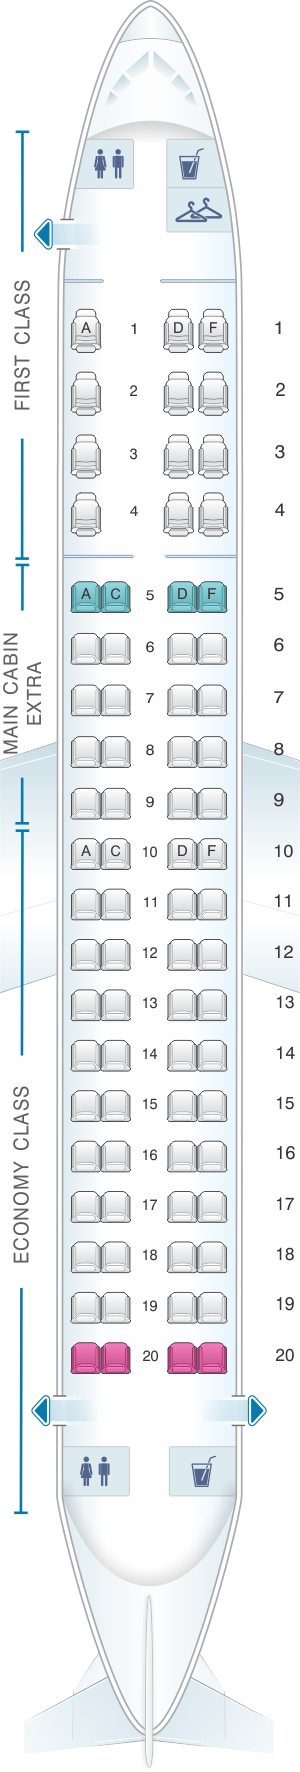 Seat map for American Airlines Embraer ERJ 175 V1